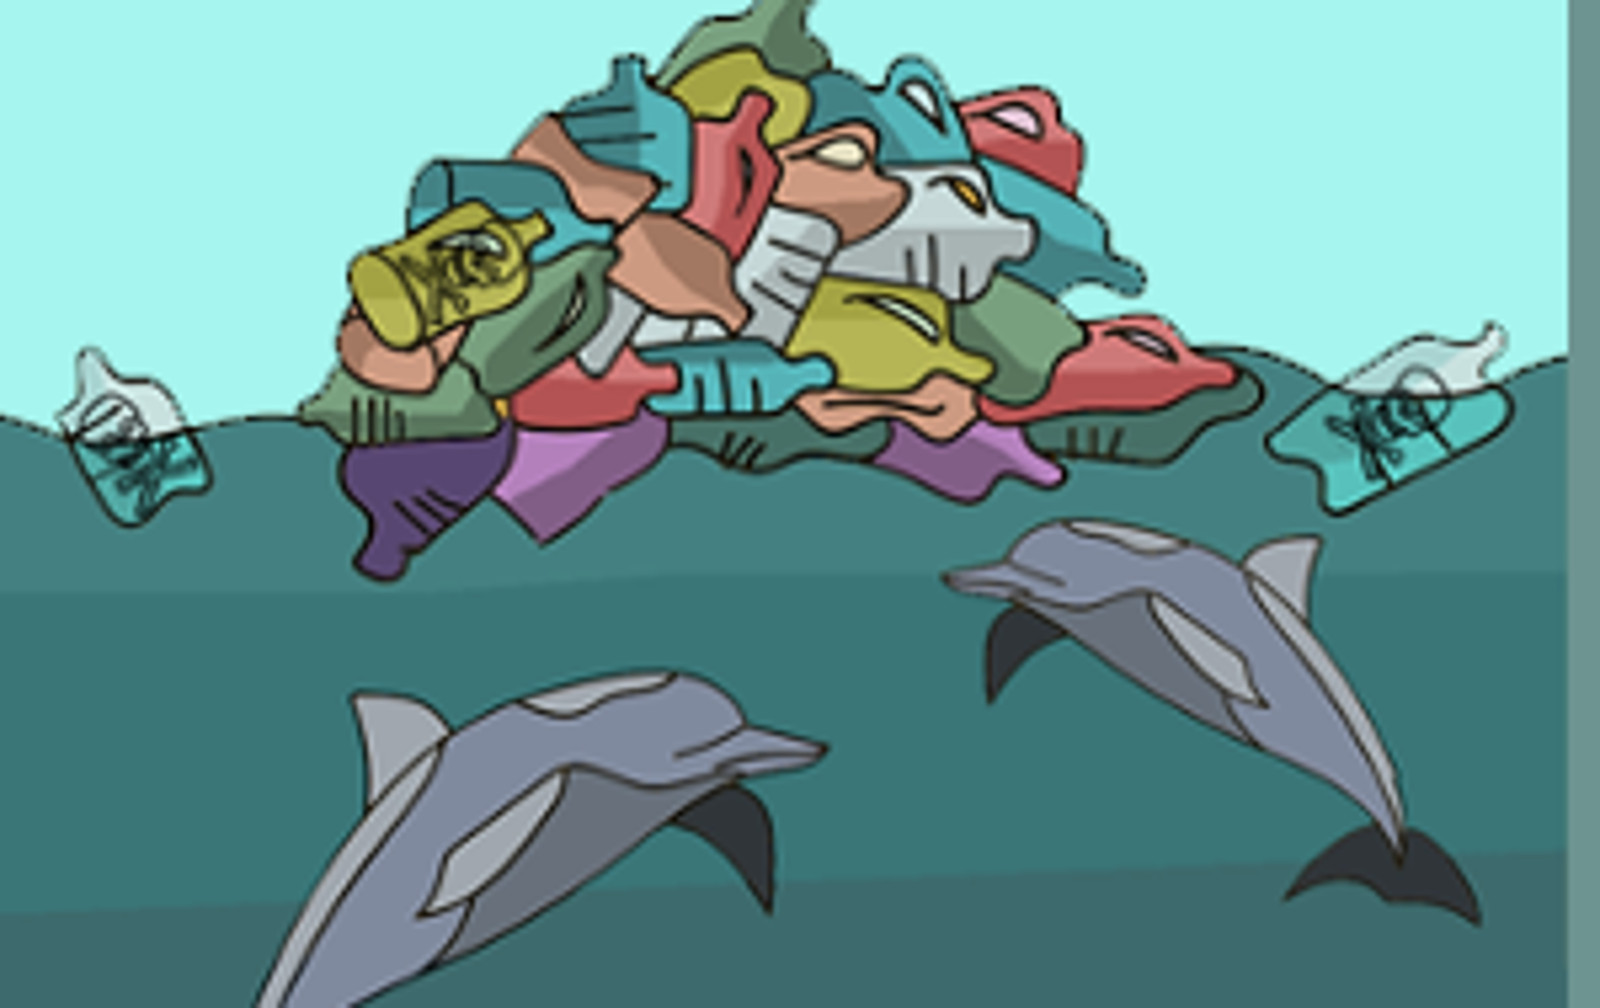 Stunning Infographic Shows How Our Plastic Habit Impacts the Ocean and Marine Animals